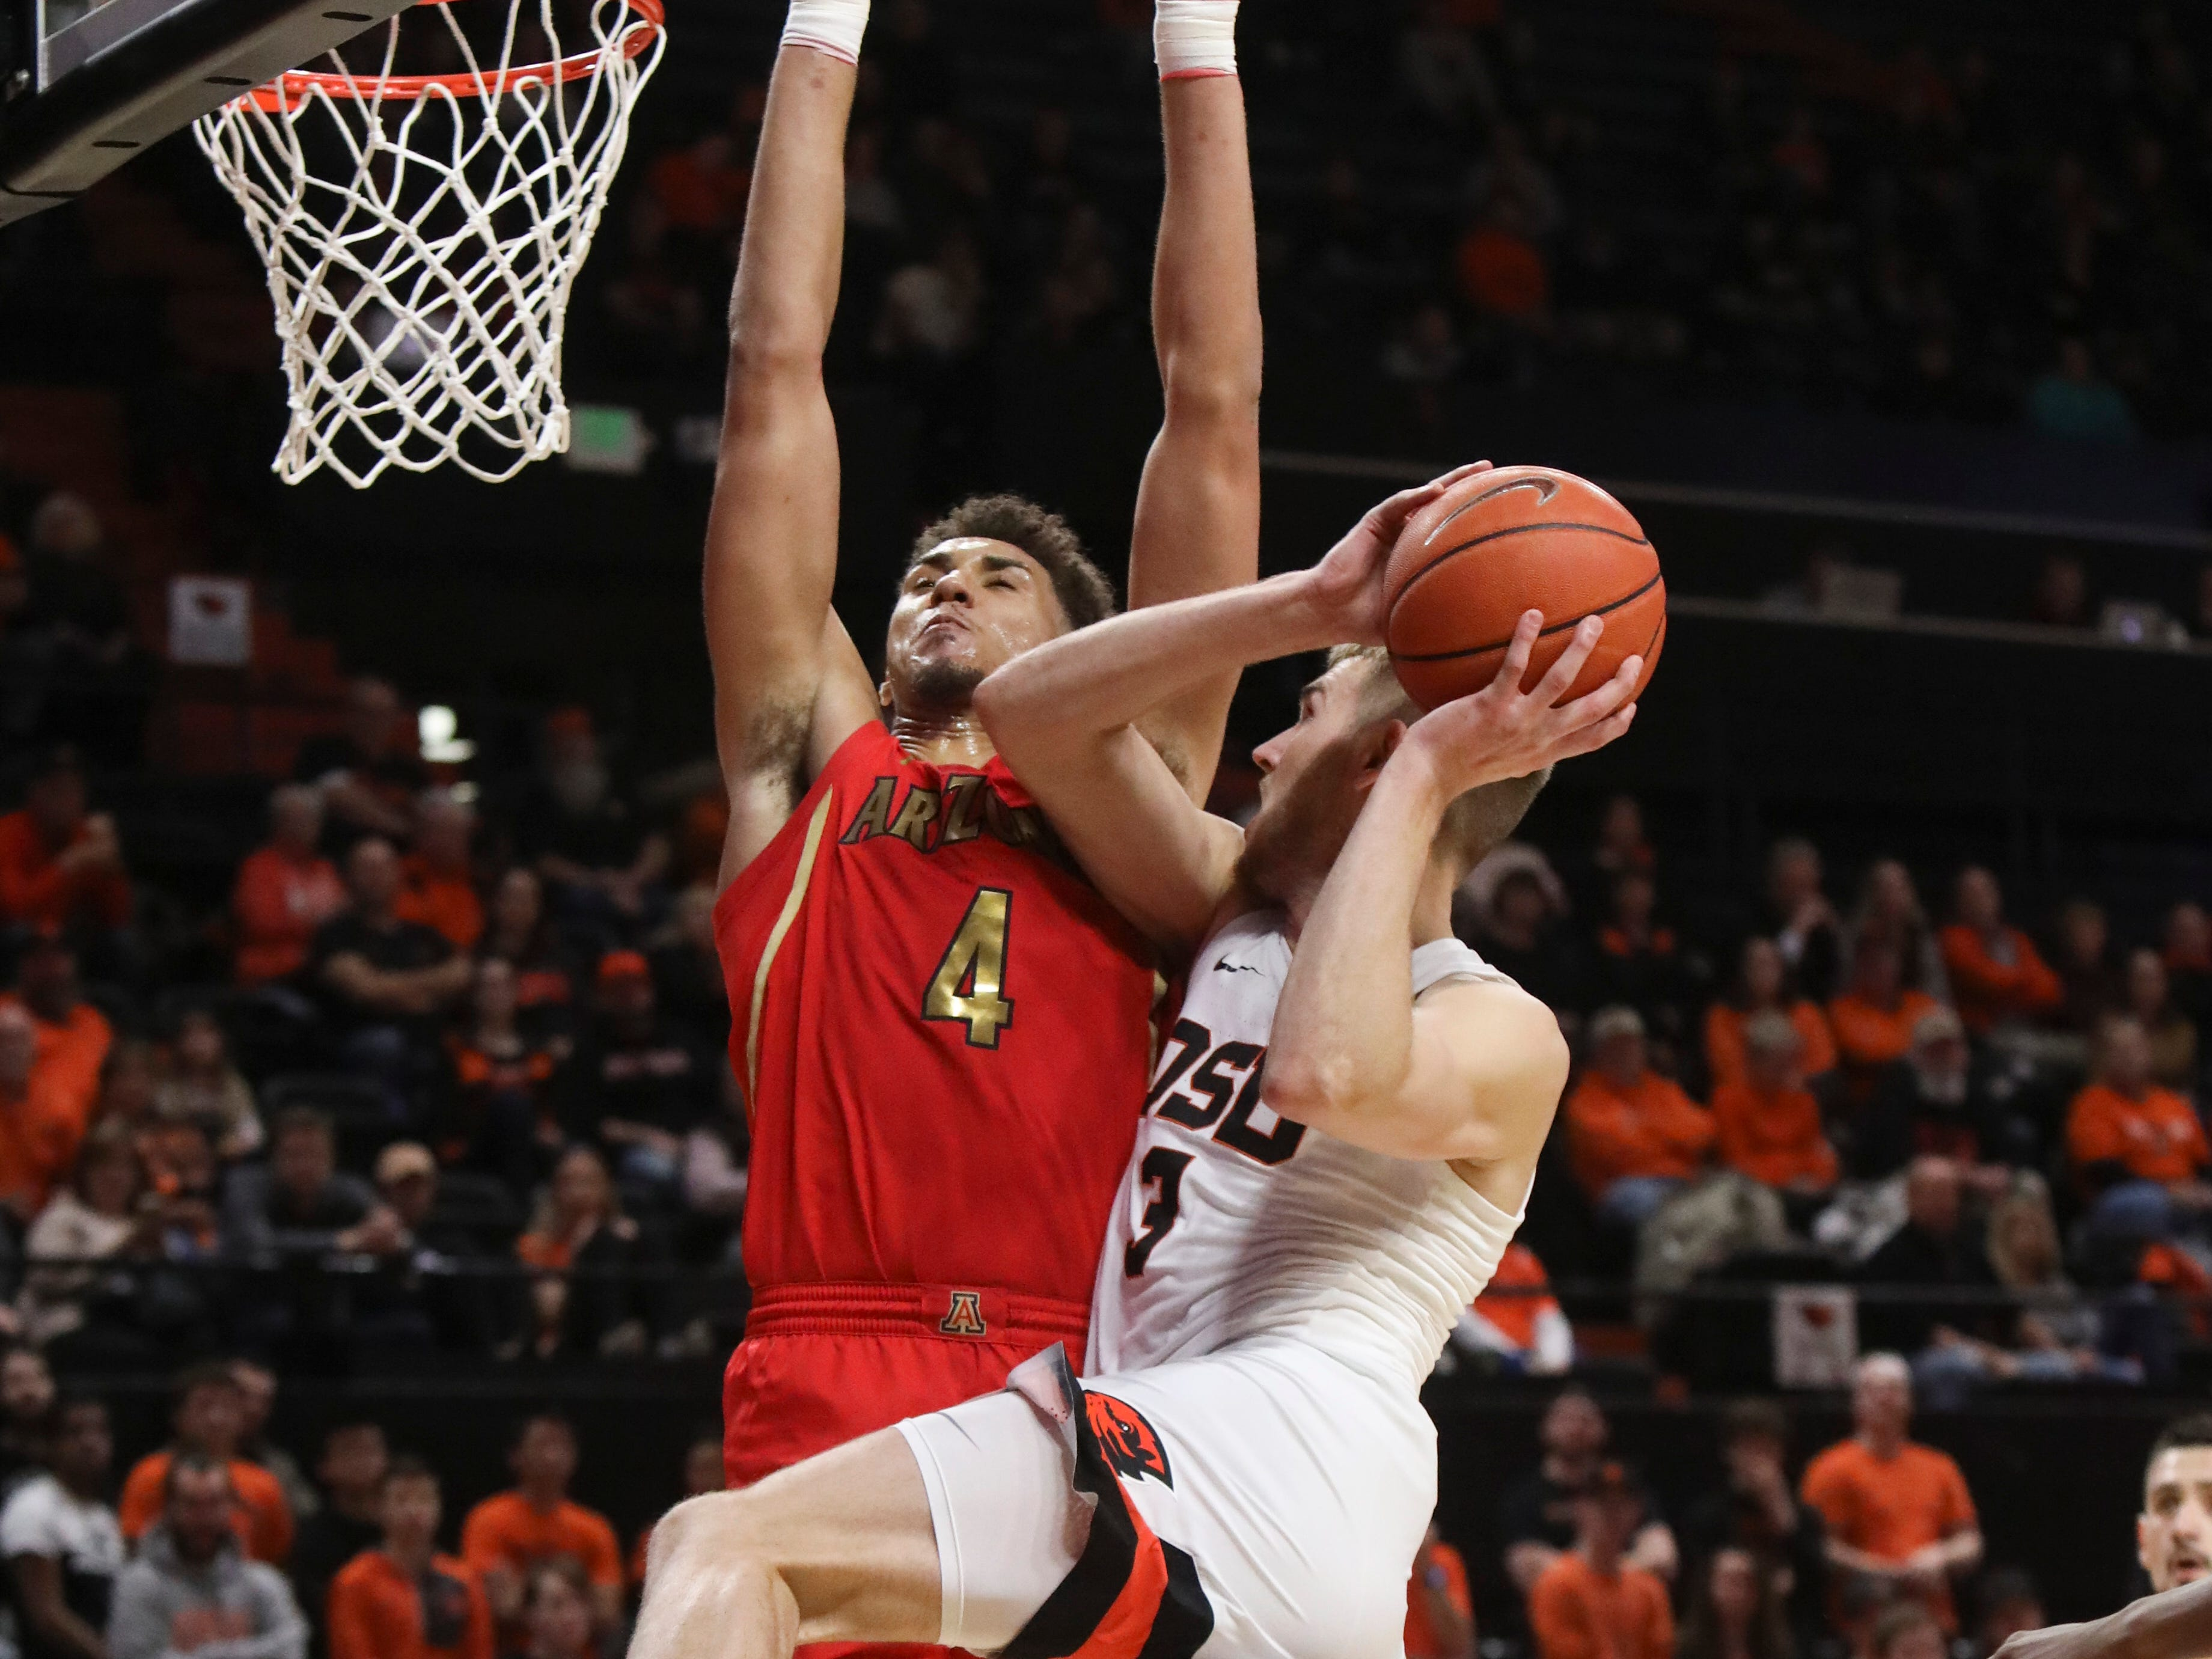 Arizona's Chase Jeter (4) tries to block a shot by Oregon State's Tres Tinkle (3) during the first half of an NCAA college basketball game in Corvallis, Ore., Thursday, Feb. 28, 2019.